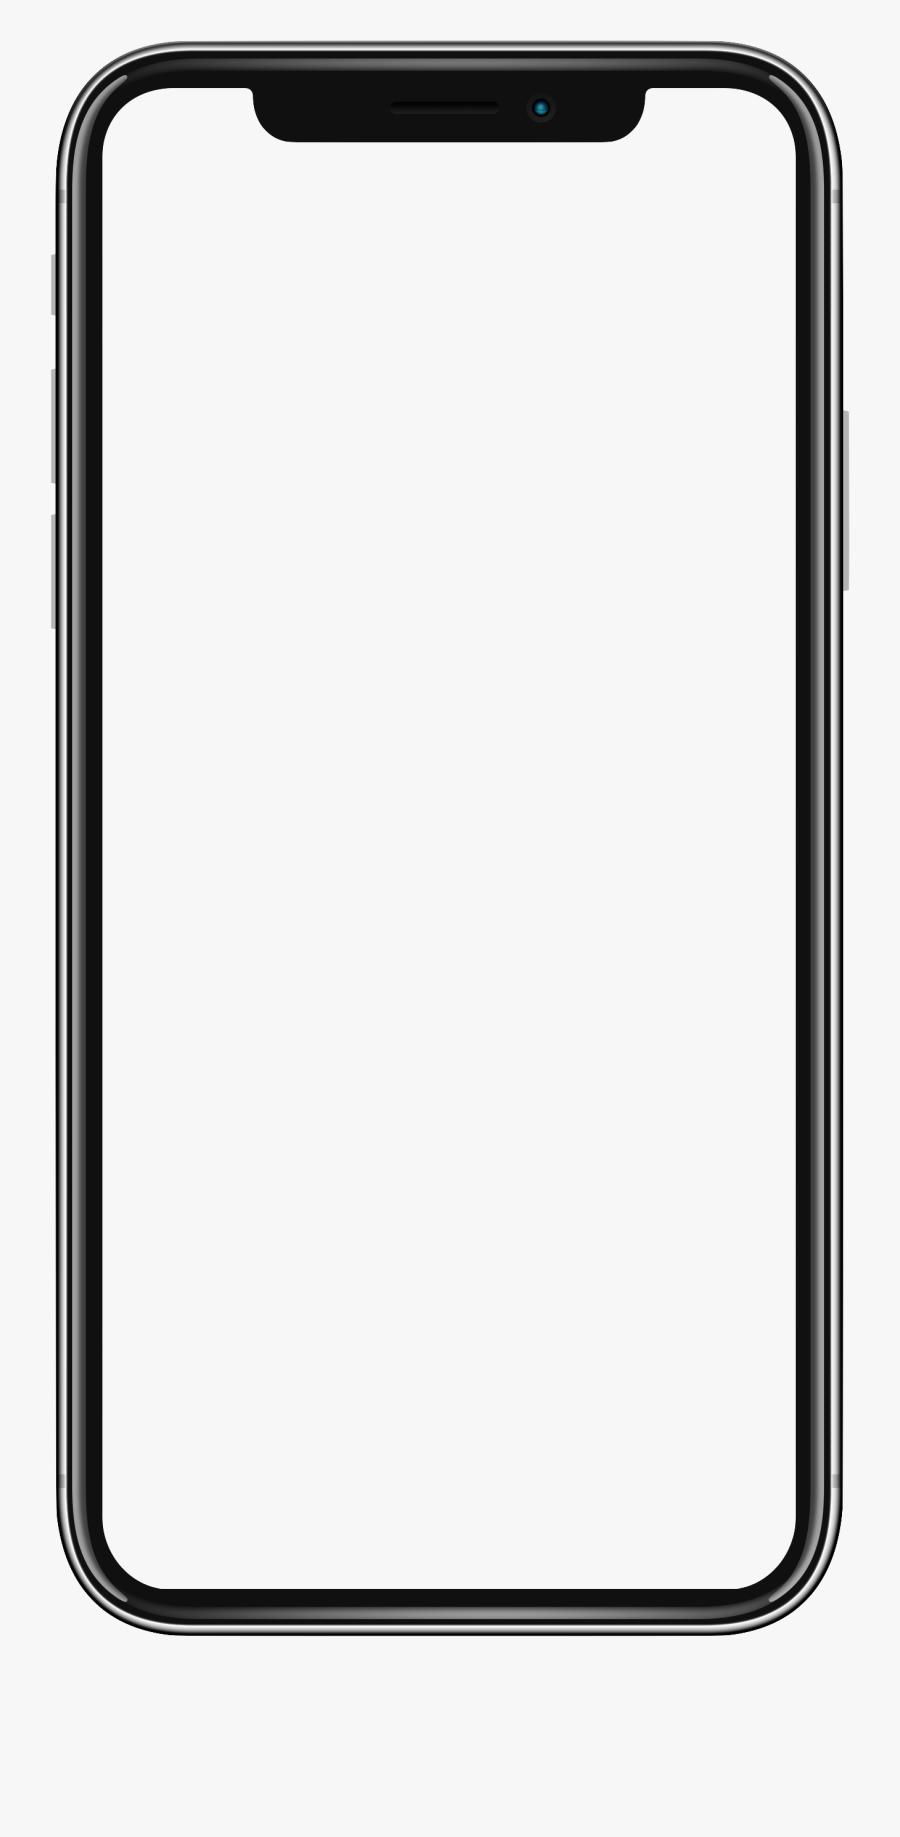 Iphone 4 Wallpaper Png - Iphone Xs White Background, Transparent Clipart